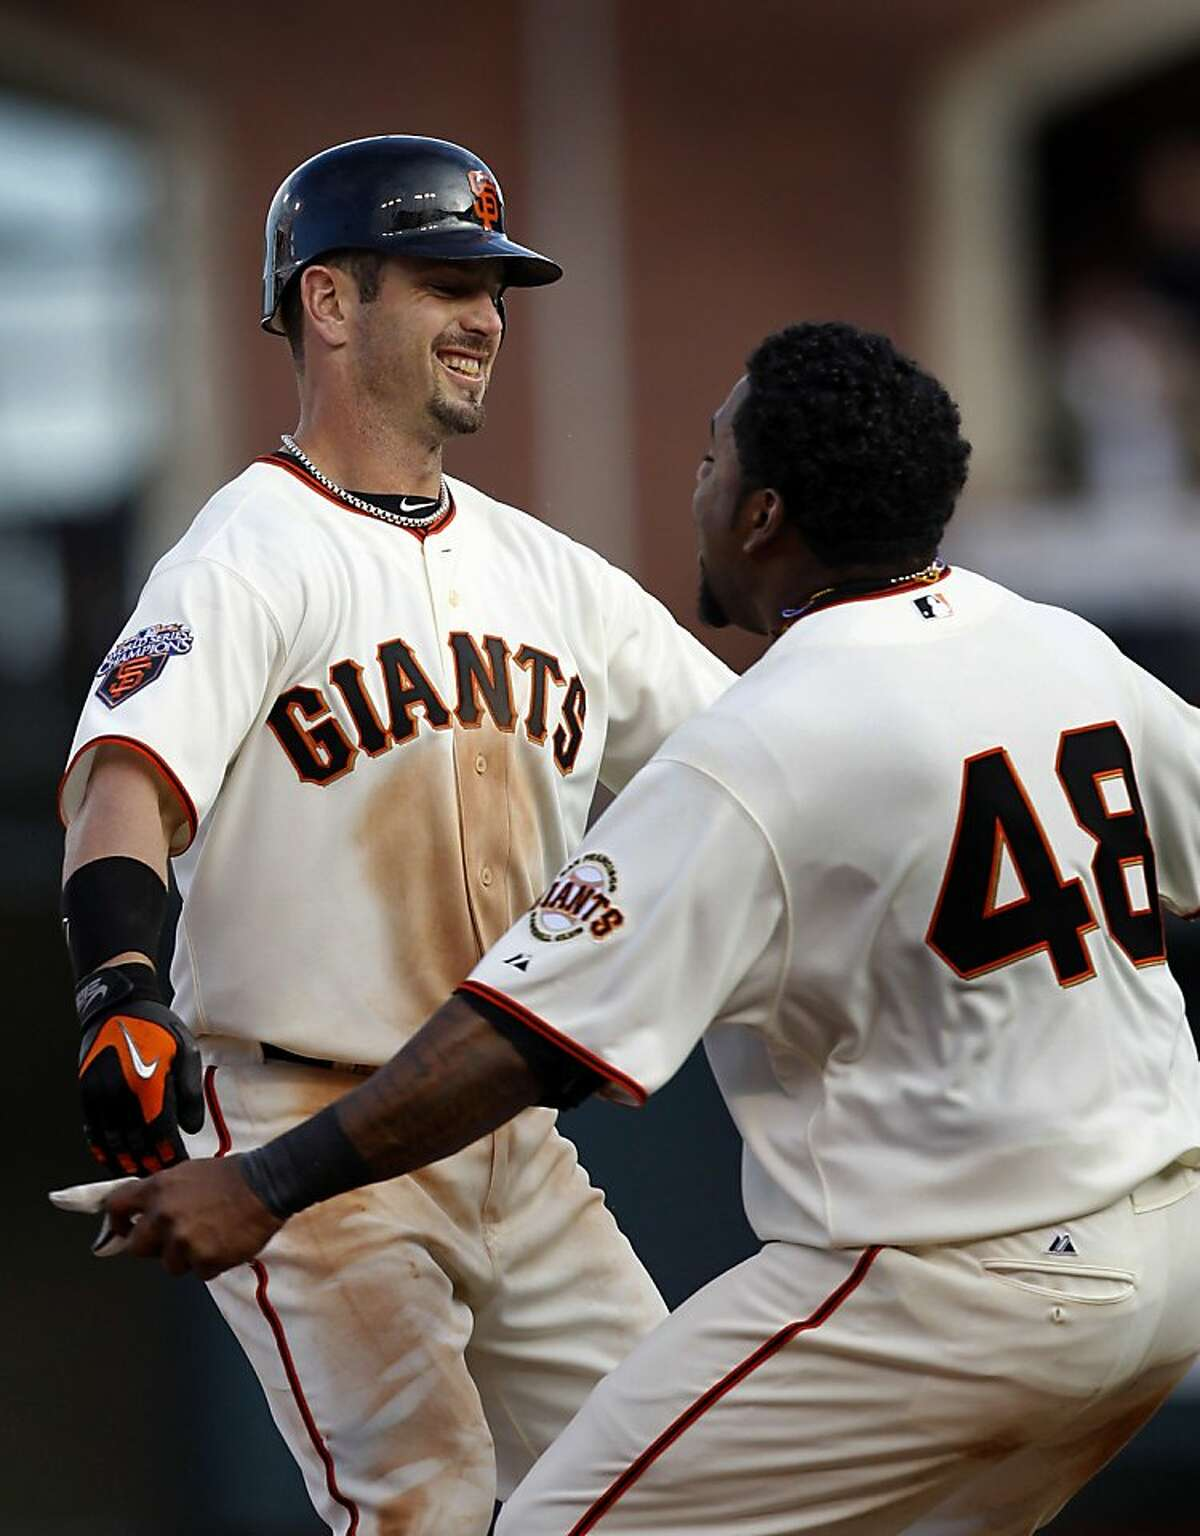 Pablo Sandoval is the first to greet Aaron Rowand after Rowand's game-winning RBI single in the 12th inning of the Giants' home opener against the St. Louis Cardinals at AT&T Park in San Francisco on Friday.